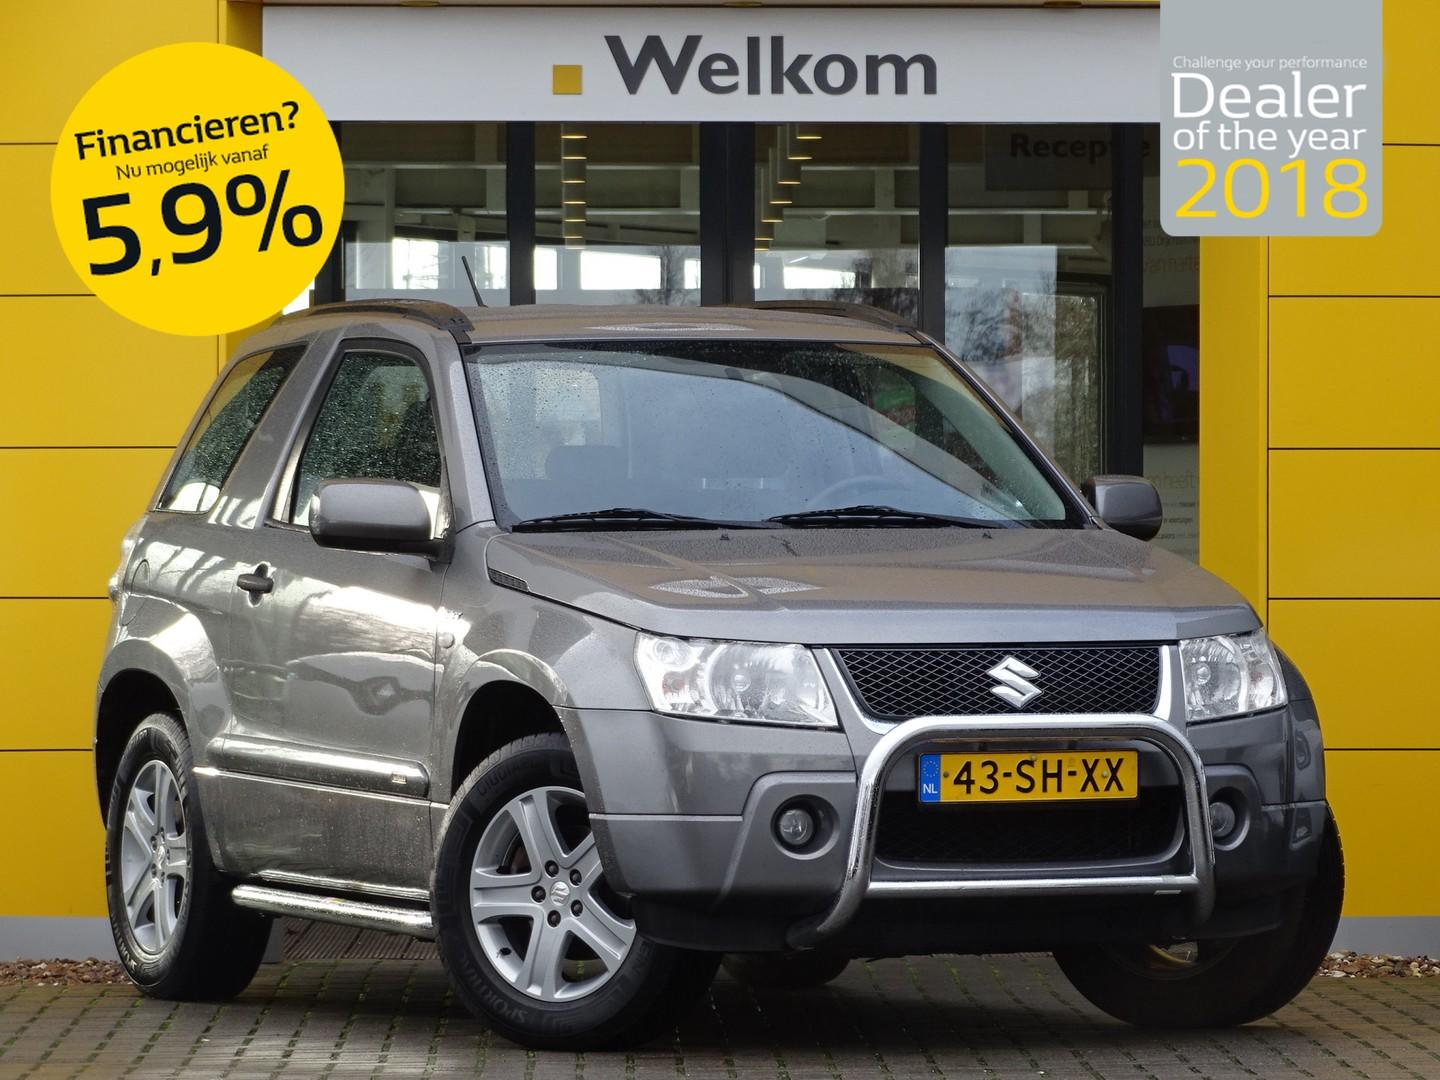 Suzuki Grand vitara 1.6-16v exclusive awd